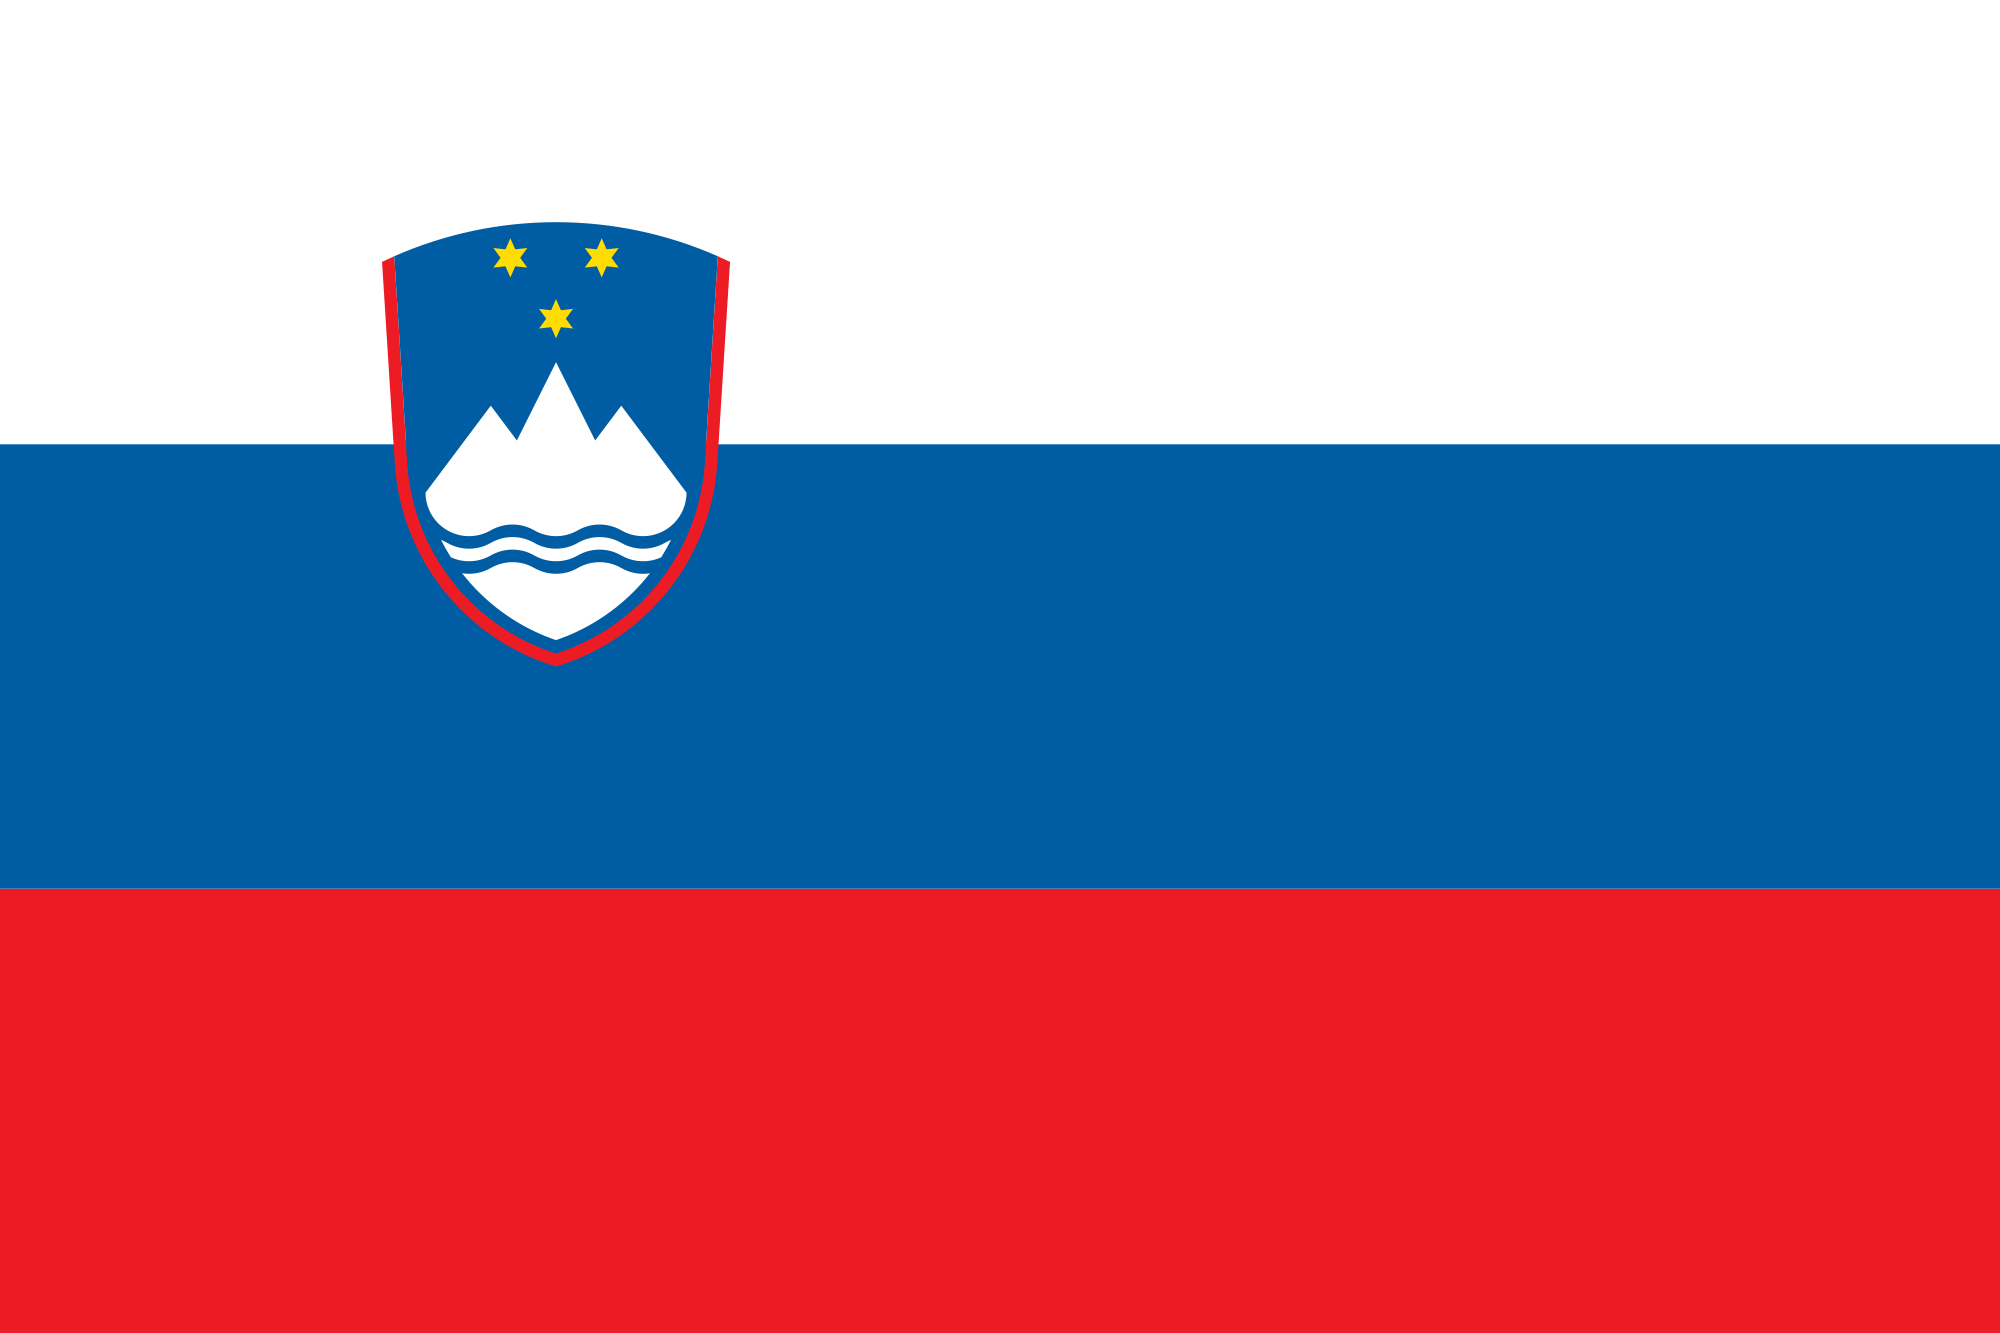 Slovenia (Civil ensign)